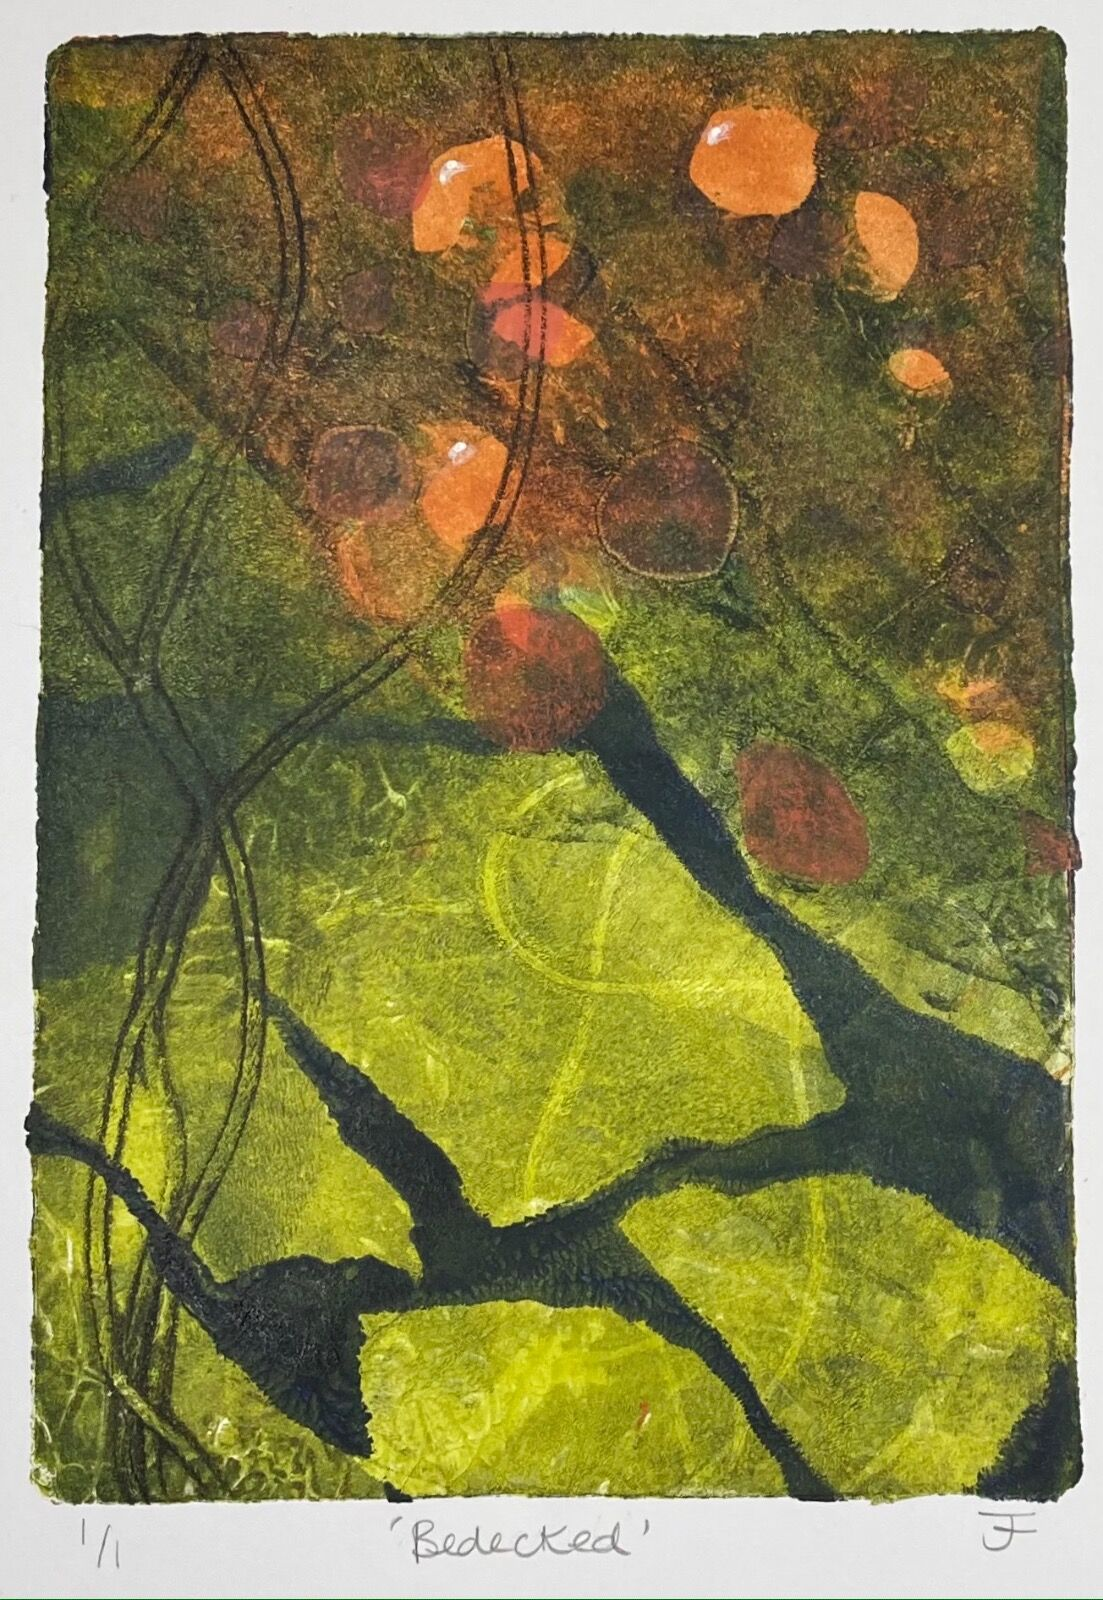 Abstracted monotype of red berries and black stems against green leafy shapes